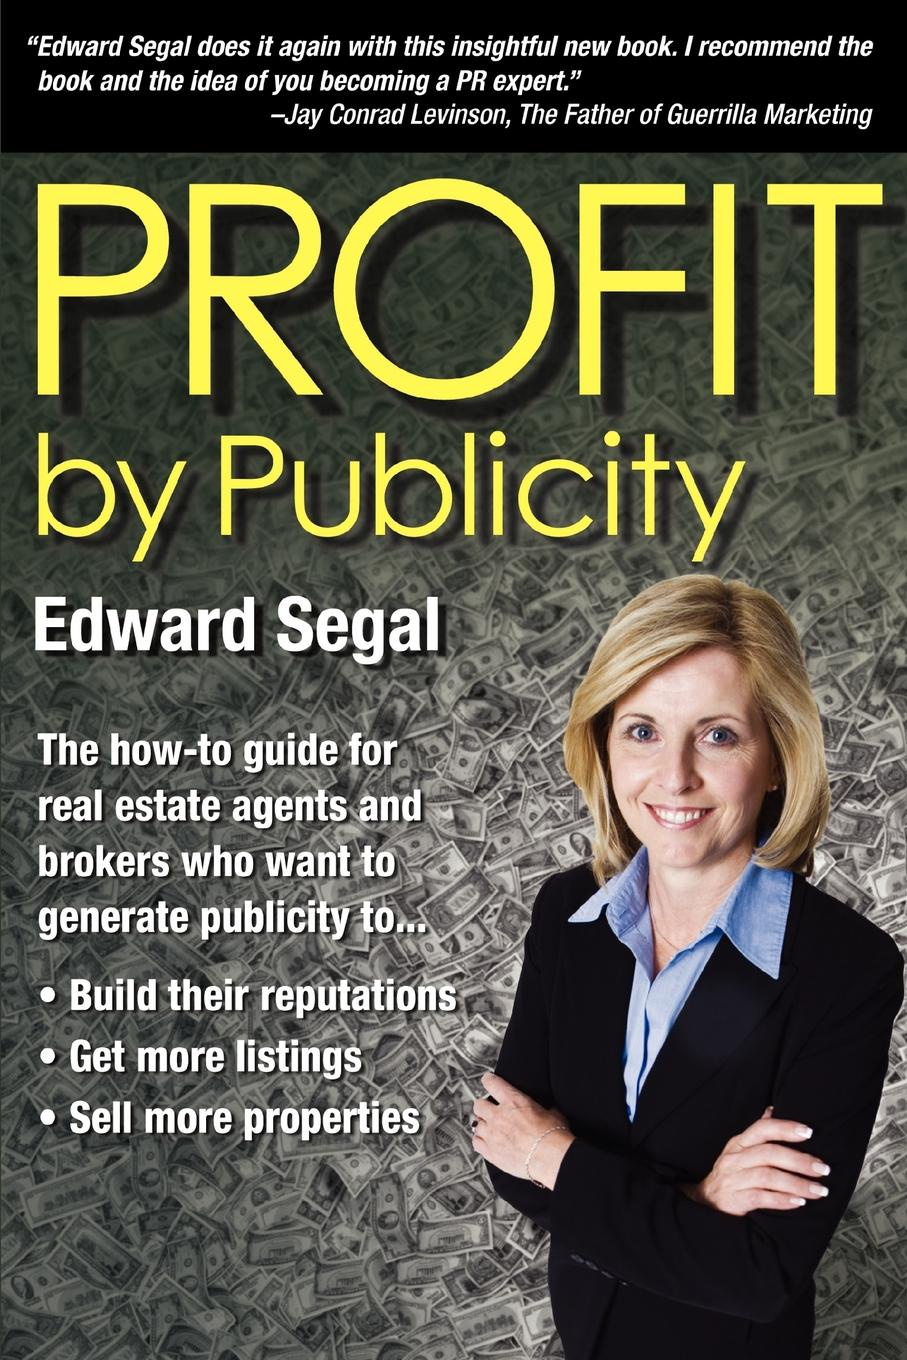 Edward Segal PROFIT by Publicity. The How-to Reference Guide for Real Estate Agents and Brokers tony wood the commercial real estate tsunami a survival guide for lenders owners buyers and brokers